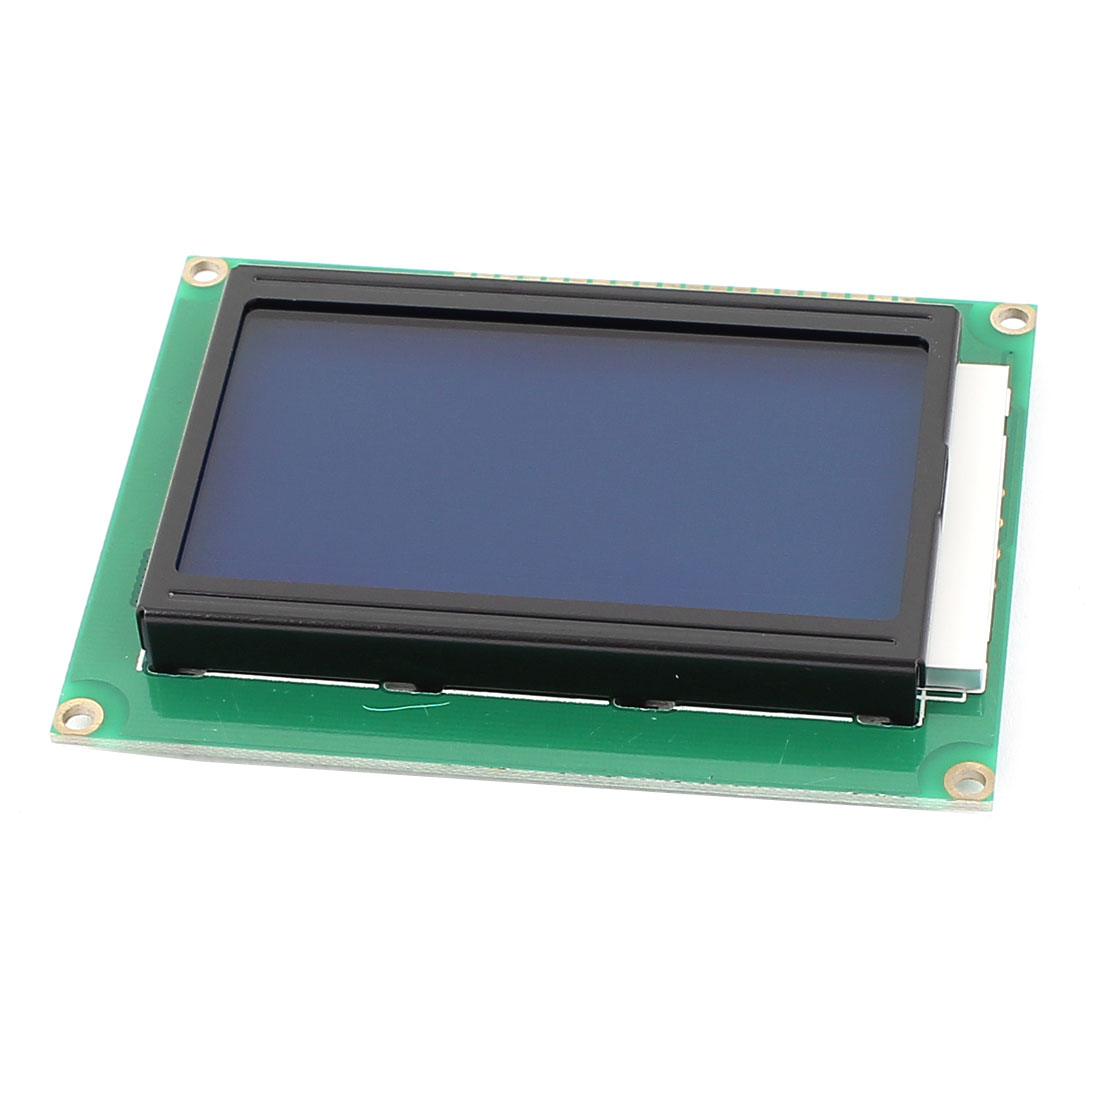 "LCD12864 Display Dot matrix 3.2"" TFT LCD Screen 5V Module for MCU"